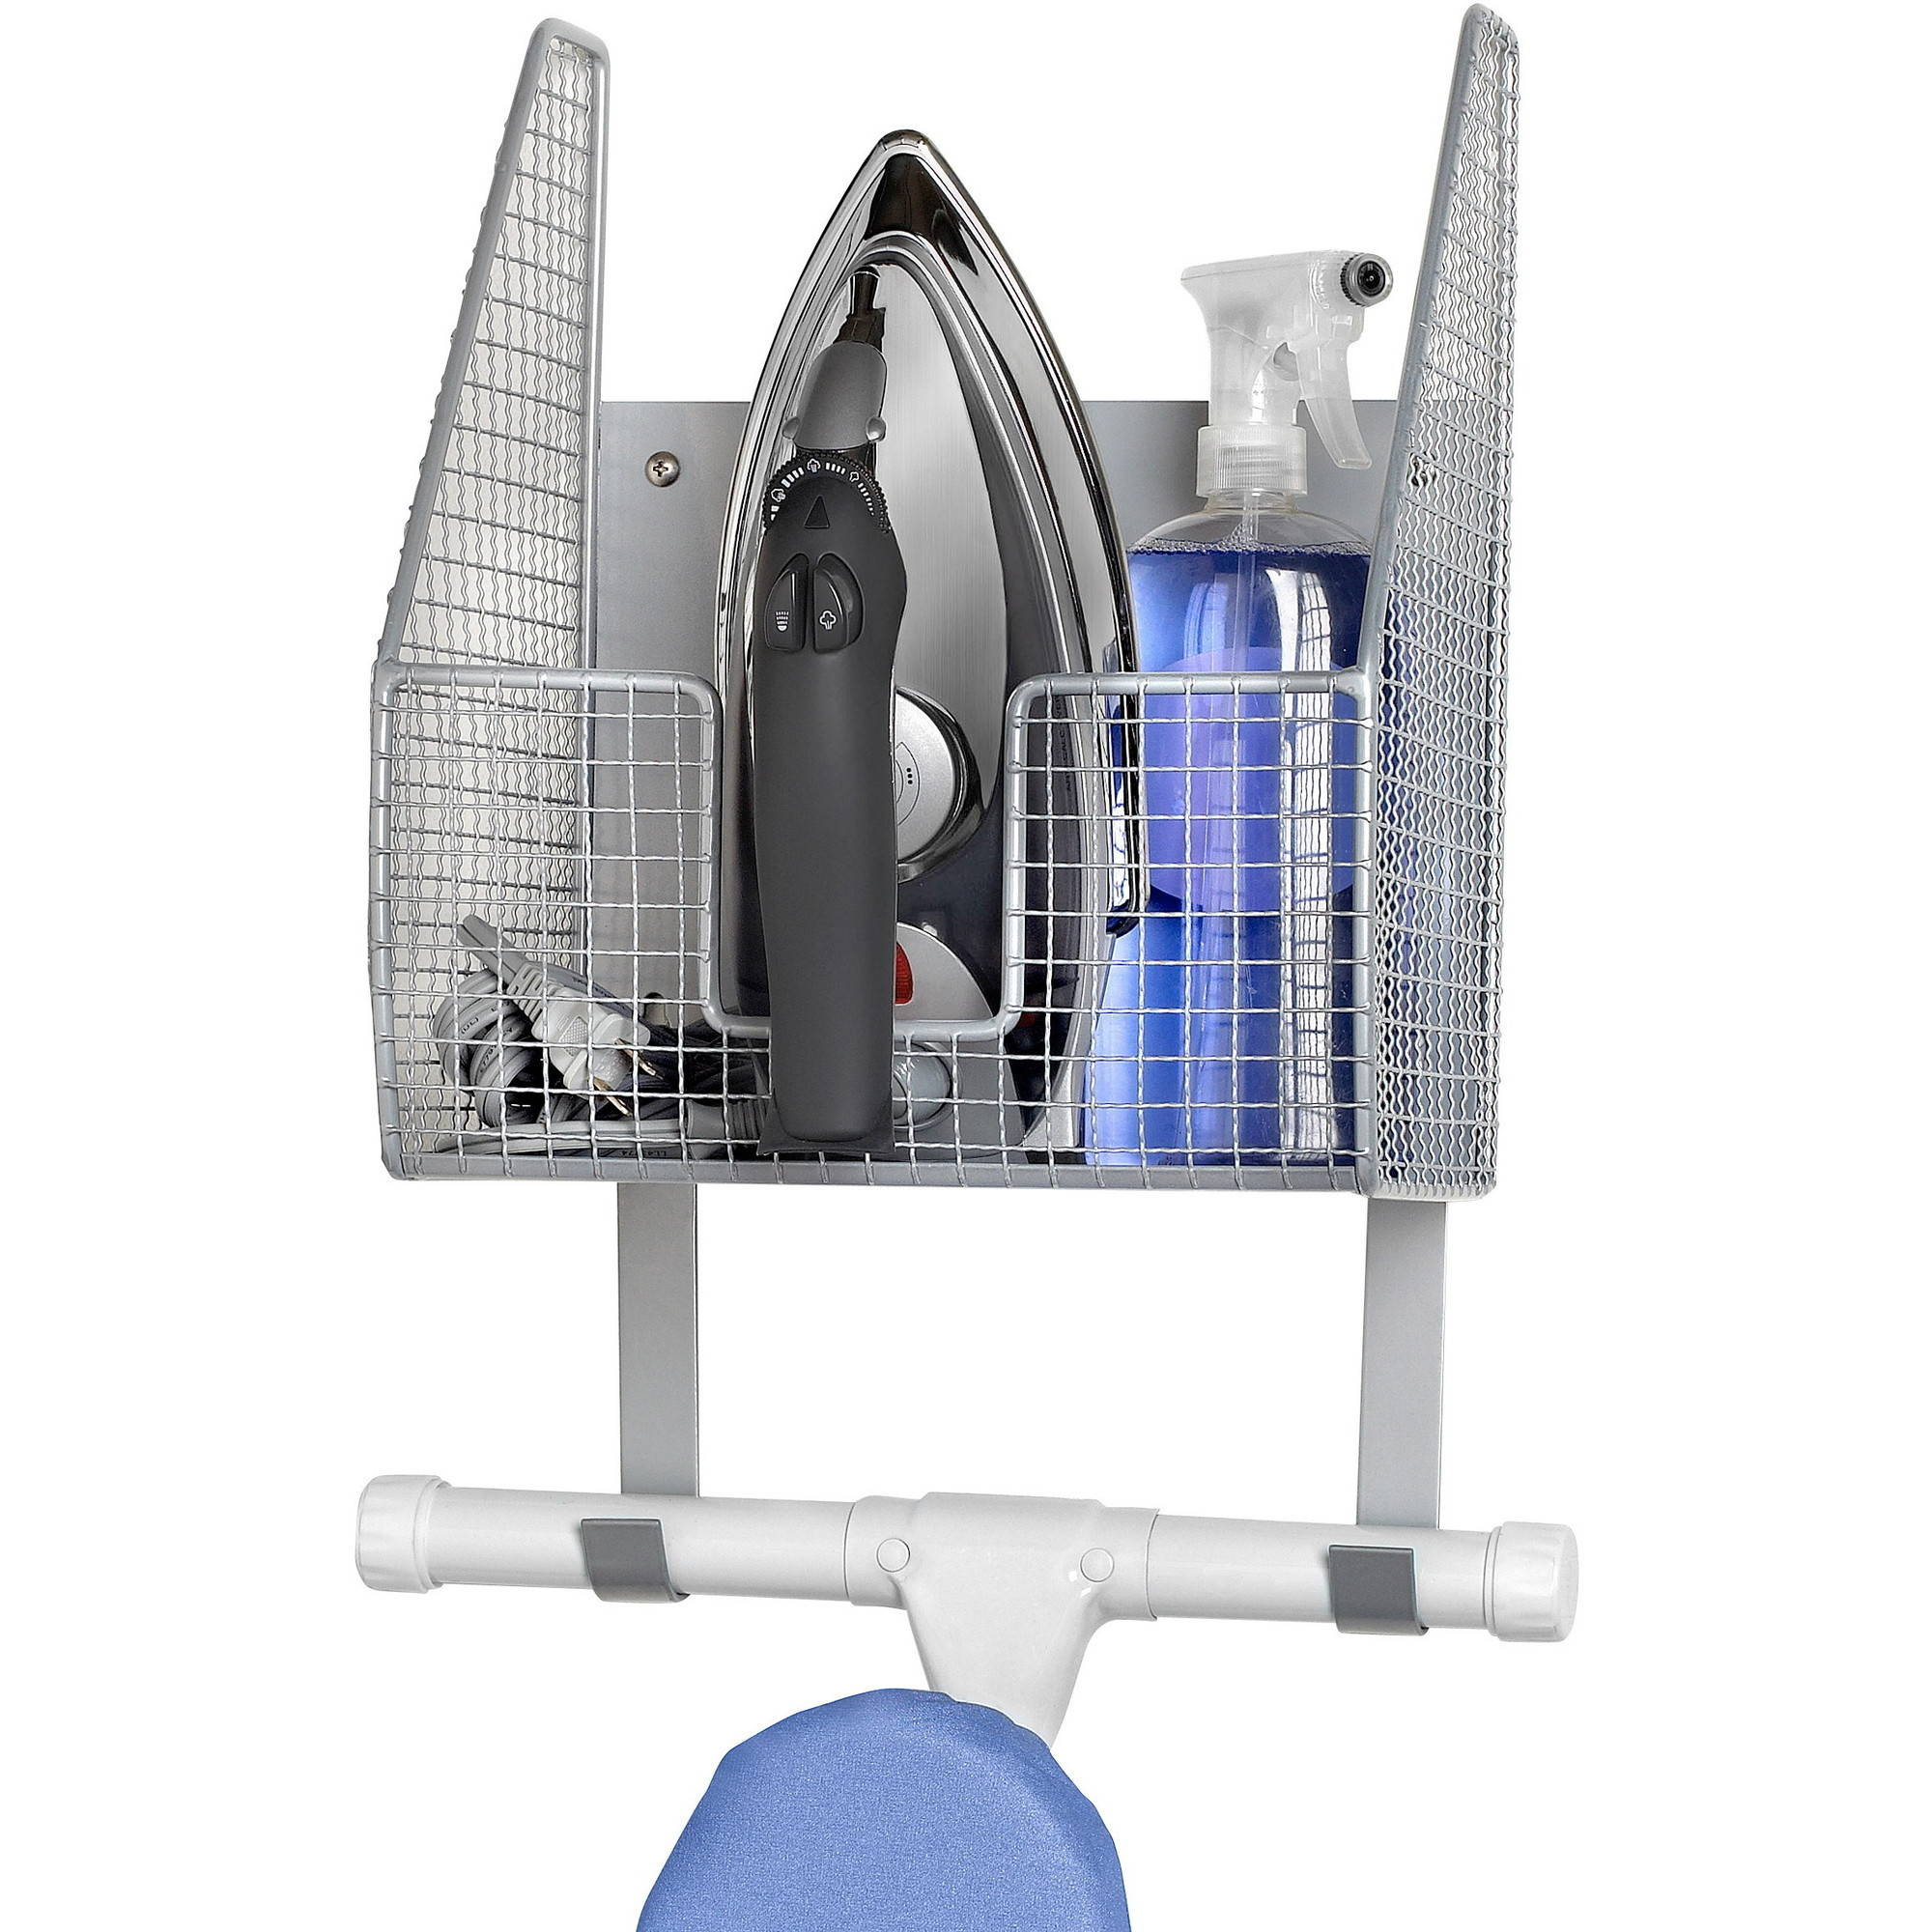 Spectrum Wall Mounted Single Basket w/Ironing Board Holder